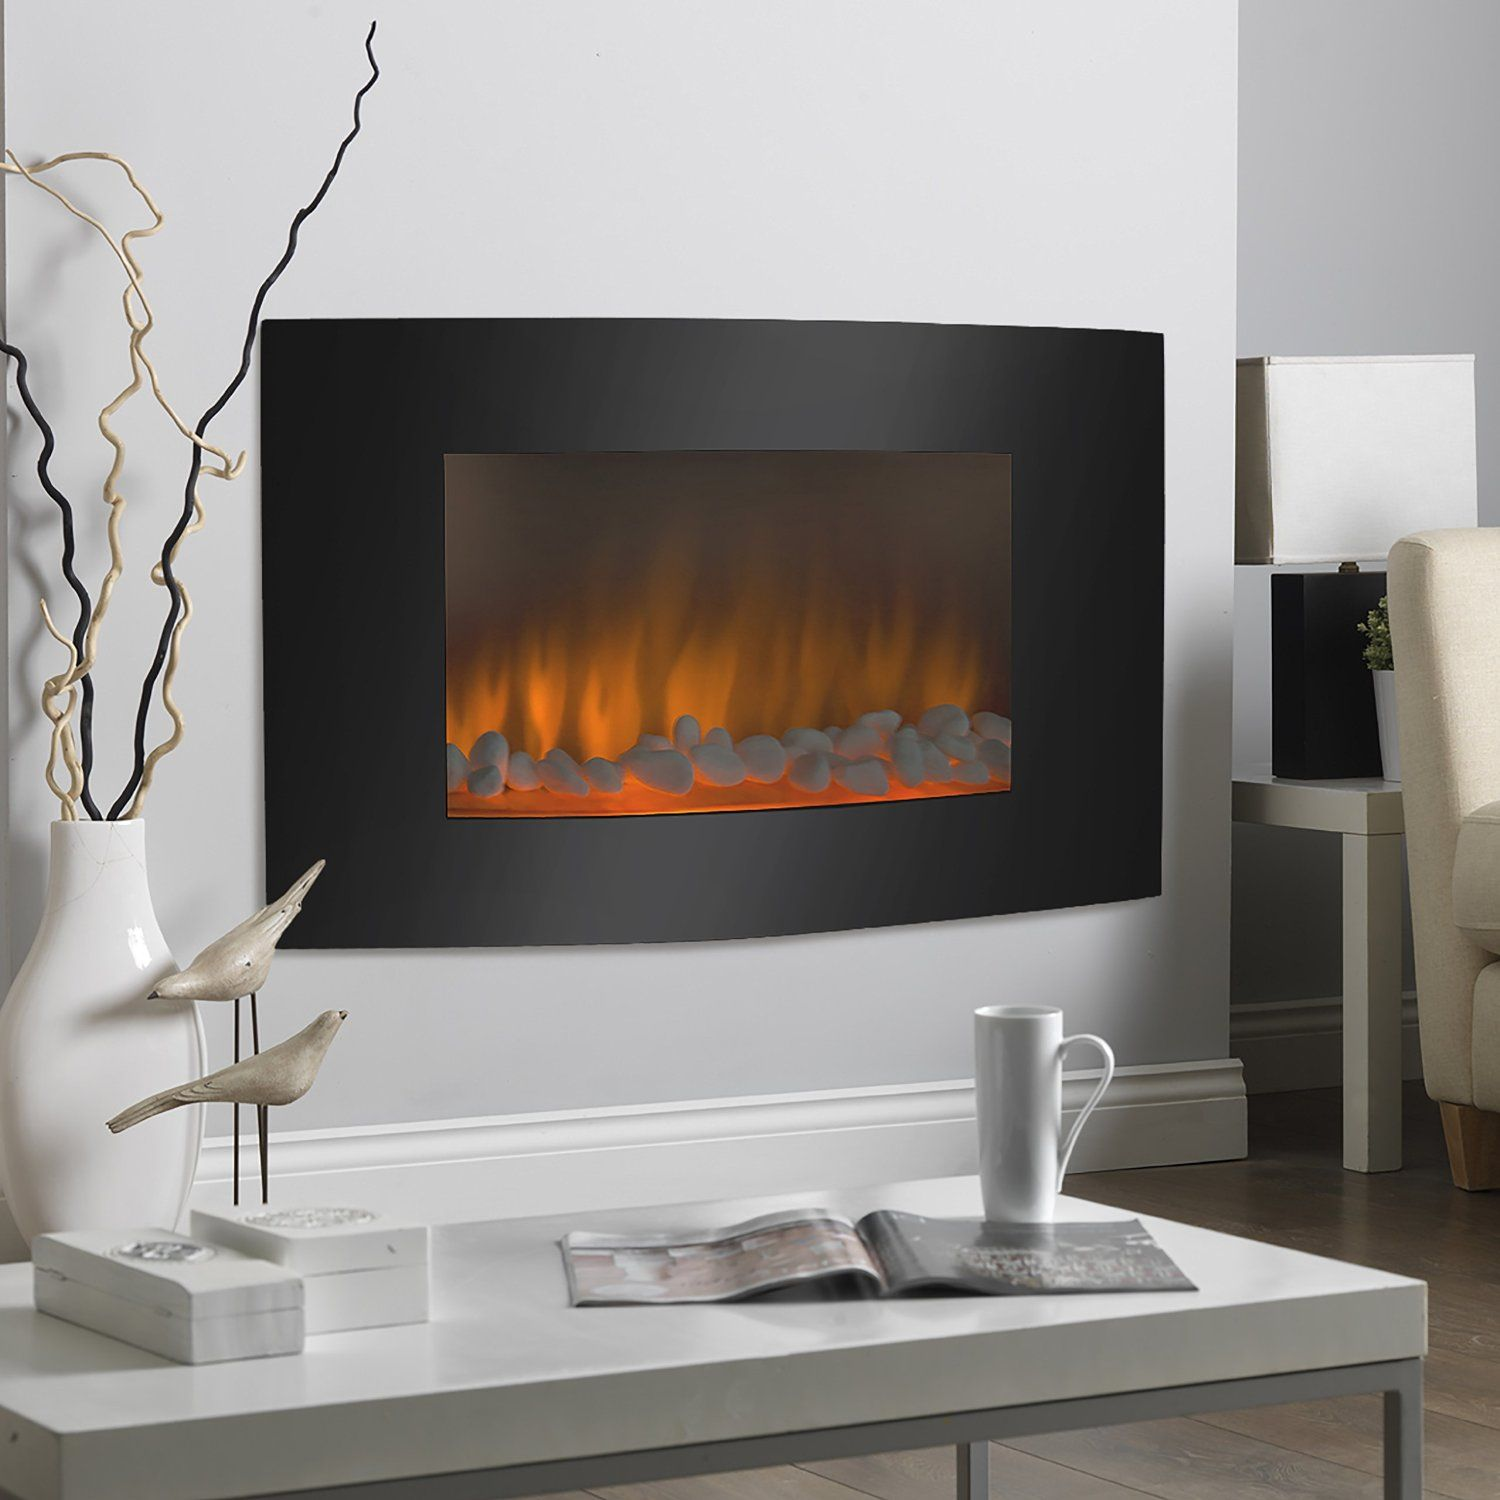 Smokeless Fireplaces Are Great Fixtures For Modern Homes If You Have A Modern House You Ma Fireplace Heater Electric Fireplace Heater Best Electric Fireplace